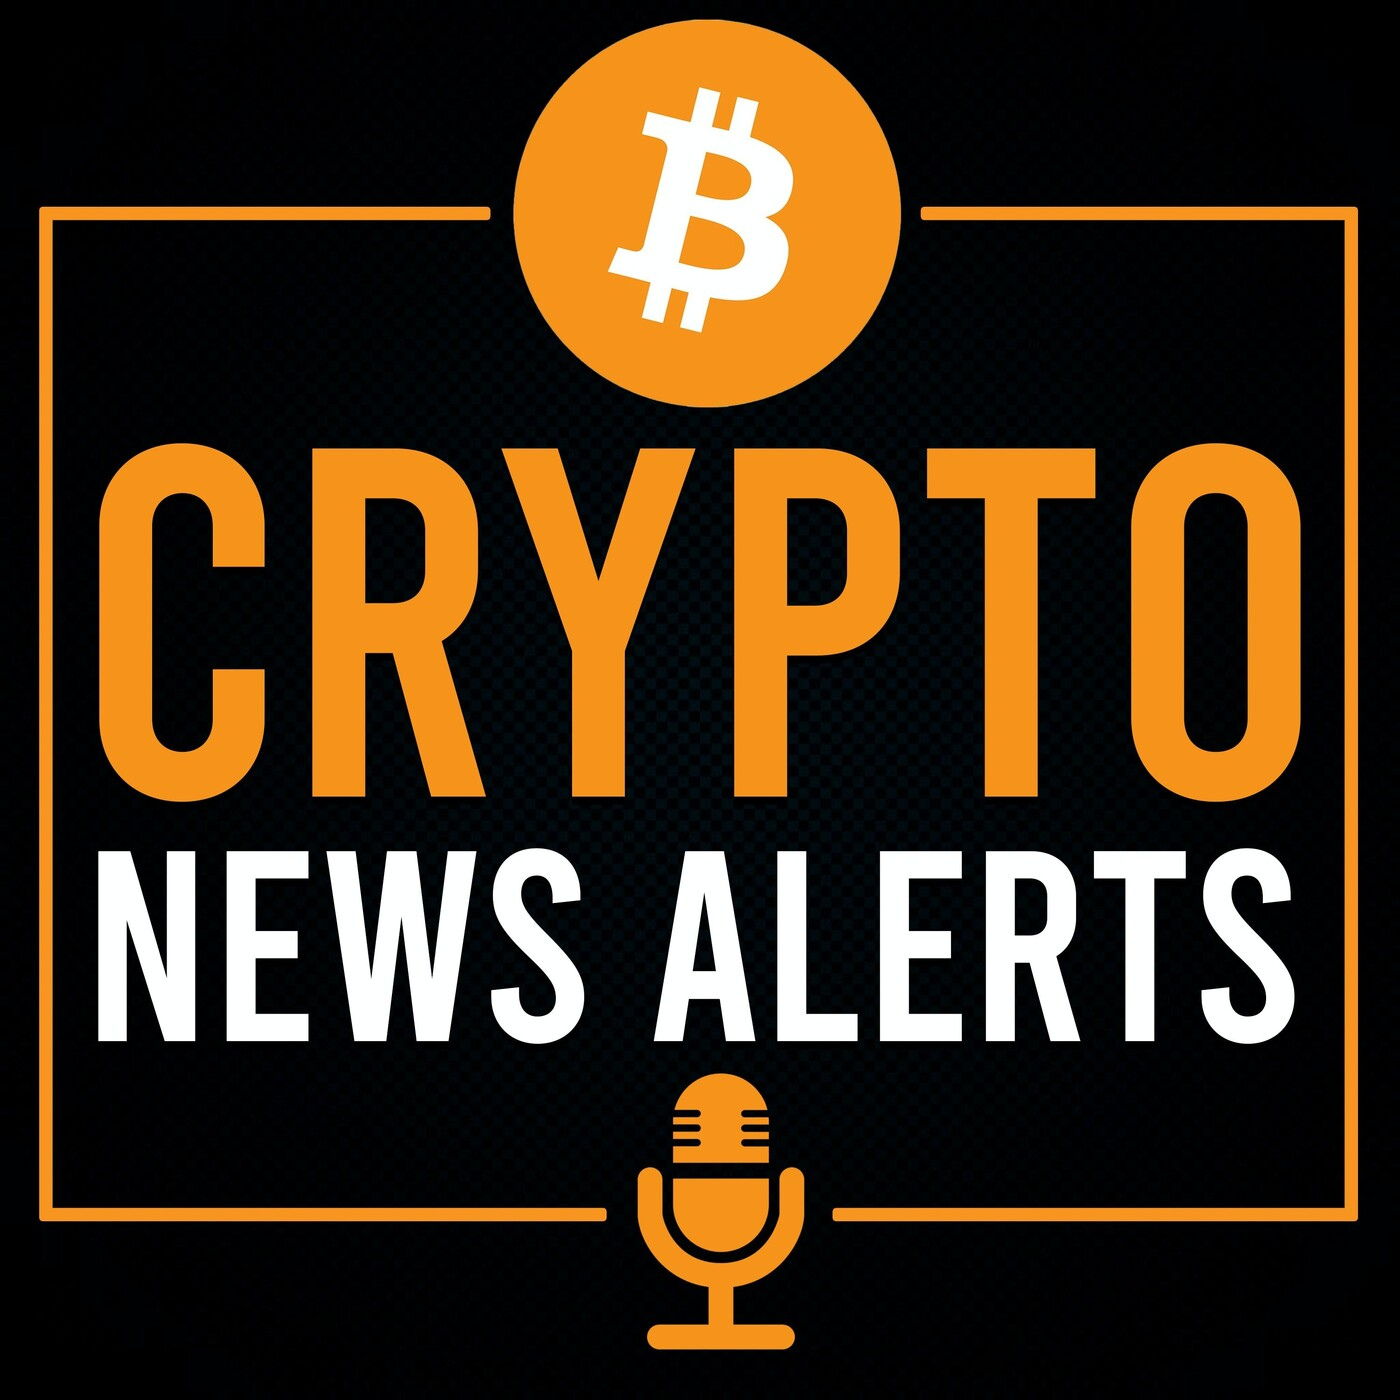 365: anthony pomplinao says bitcoin targeting $225k by end of 2021!! btc will soar 10-20x this bull run!!